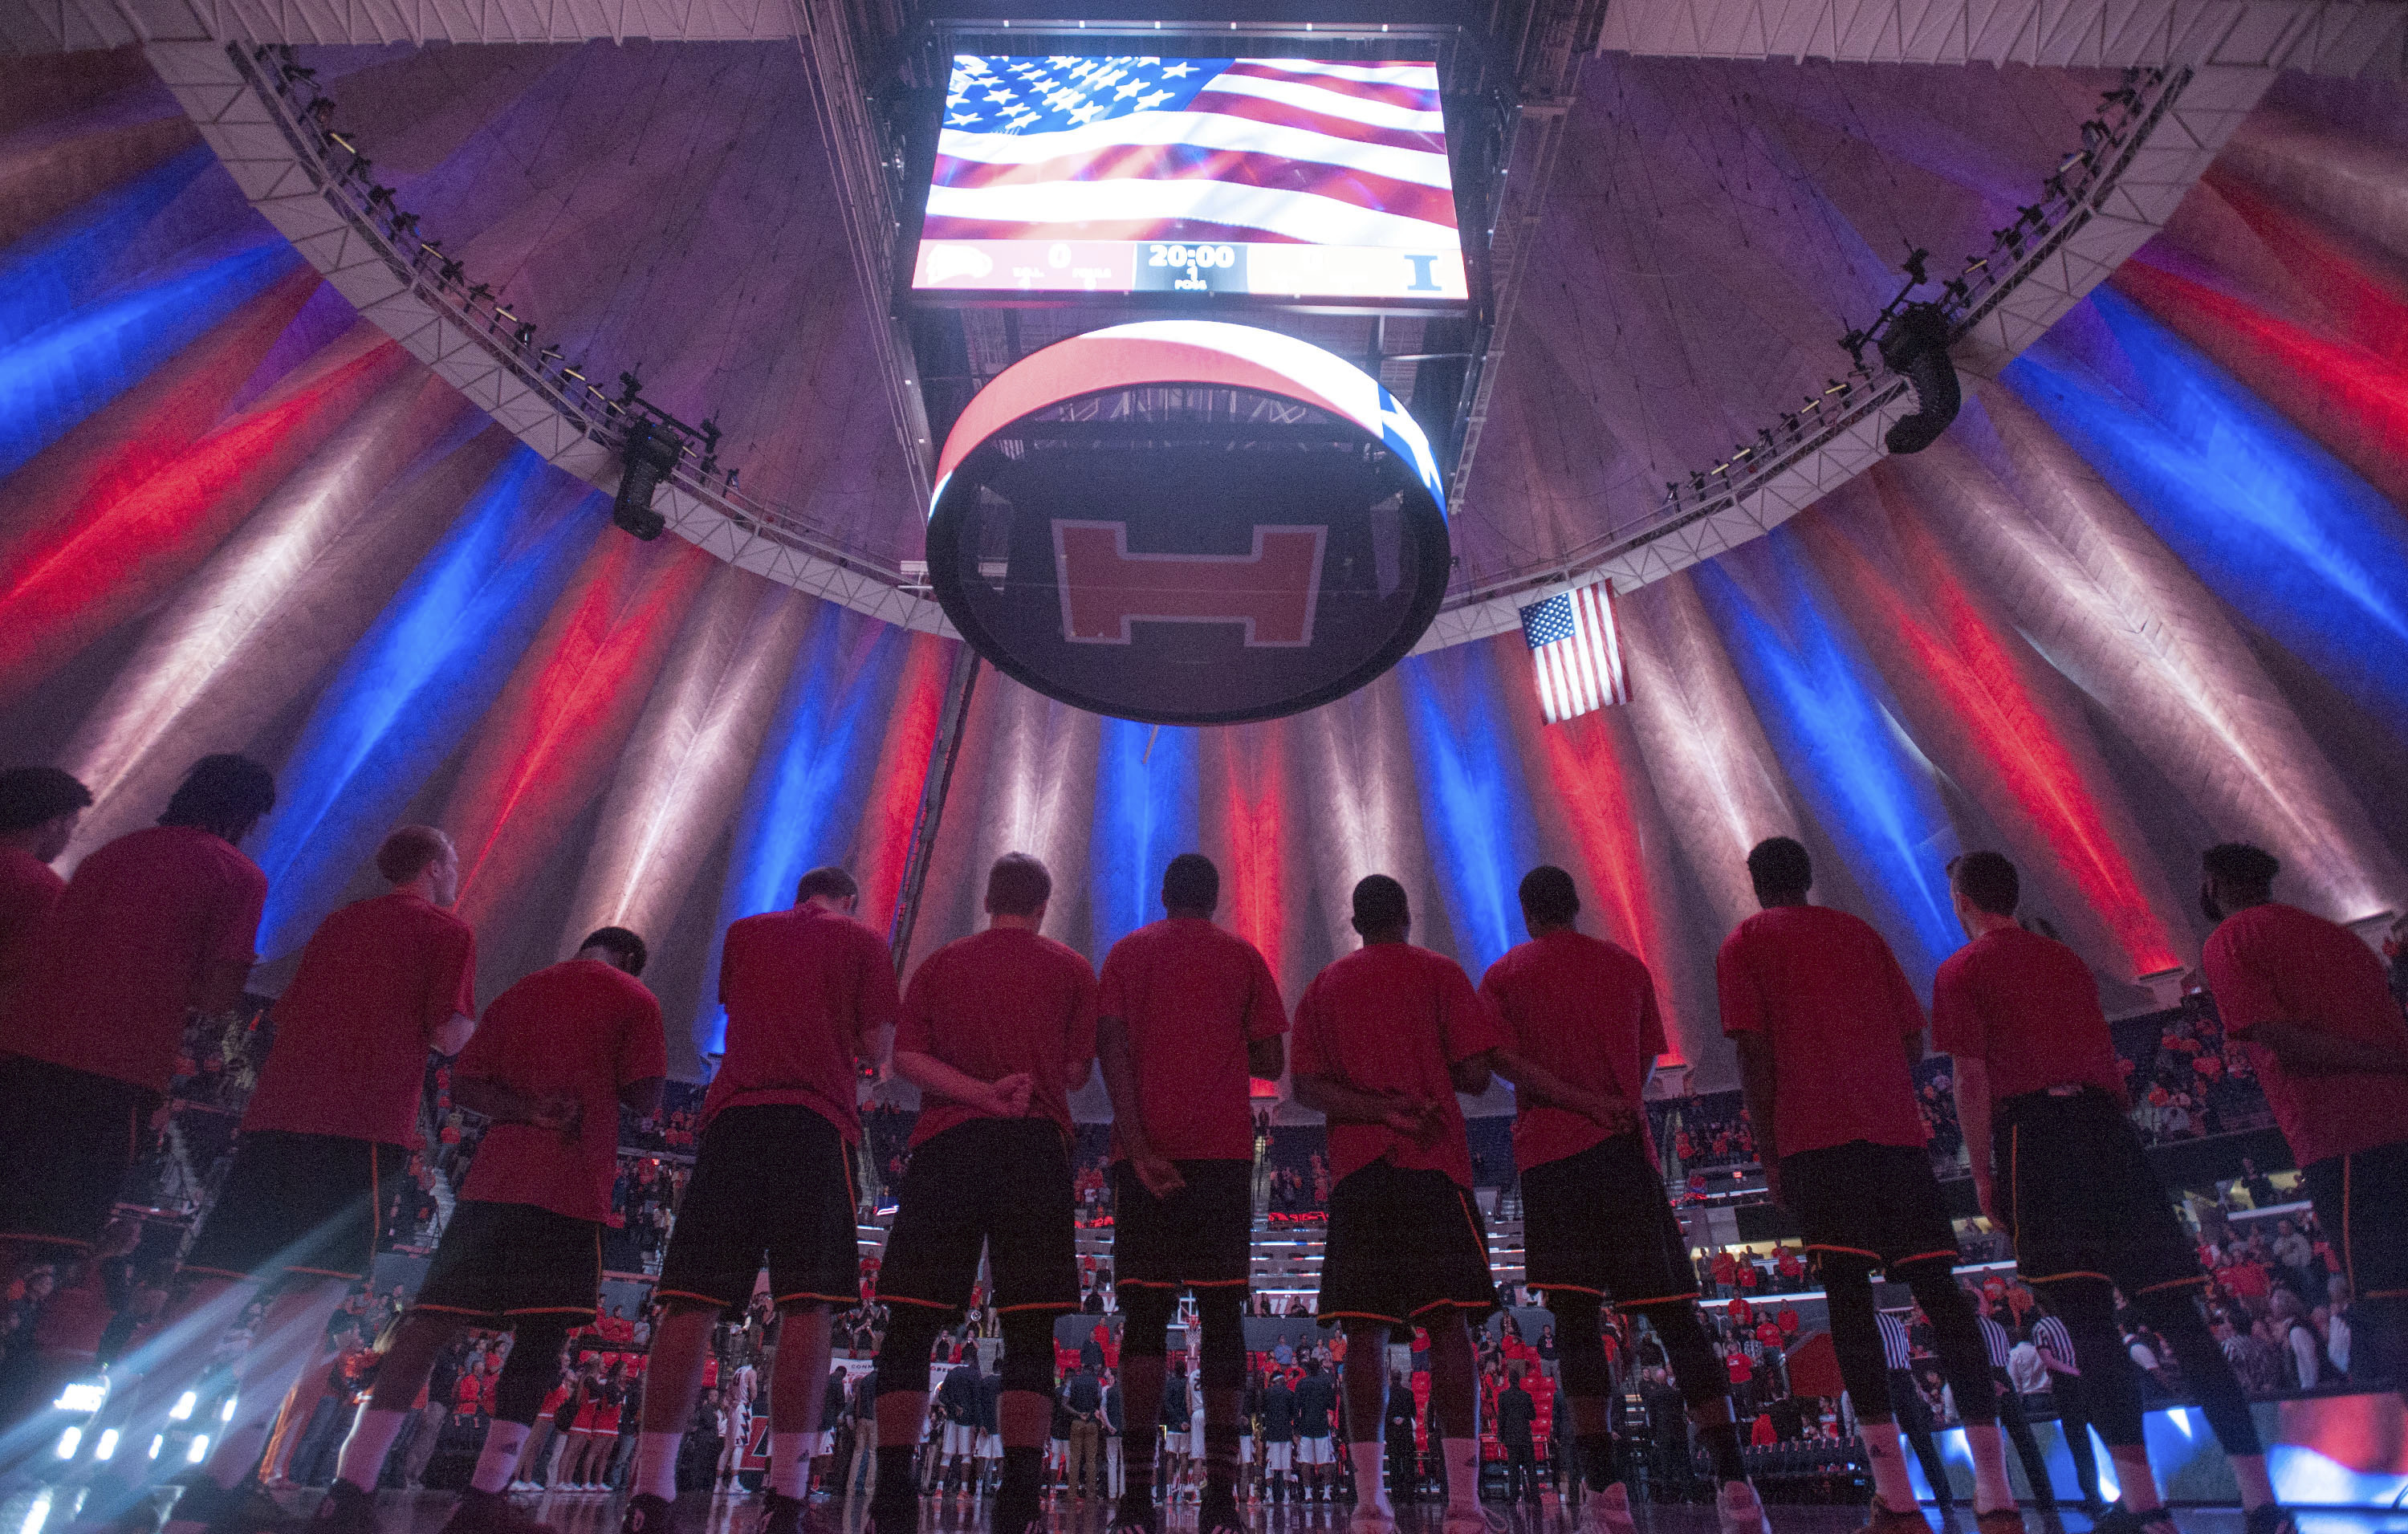 Winthrop players stand on the court during the national anthem before a game at the State Farm Center in Champaign-Urbana.